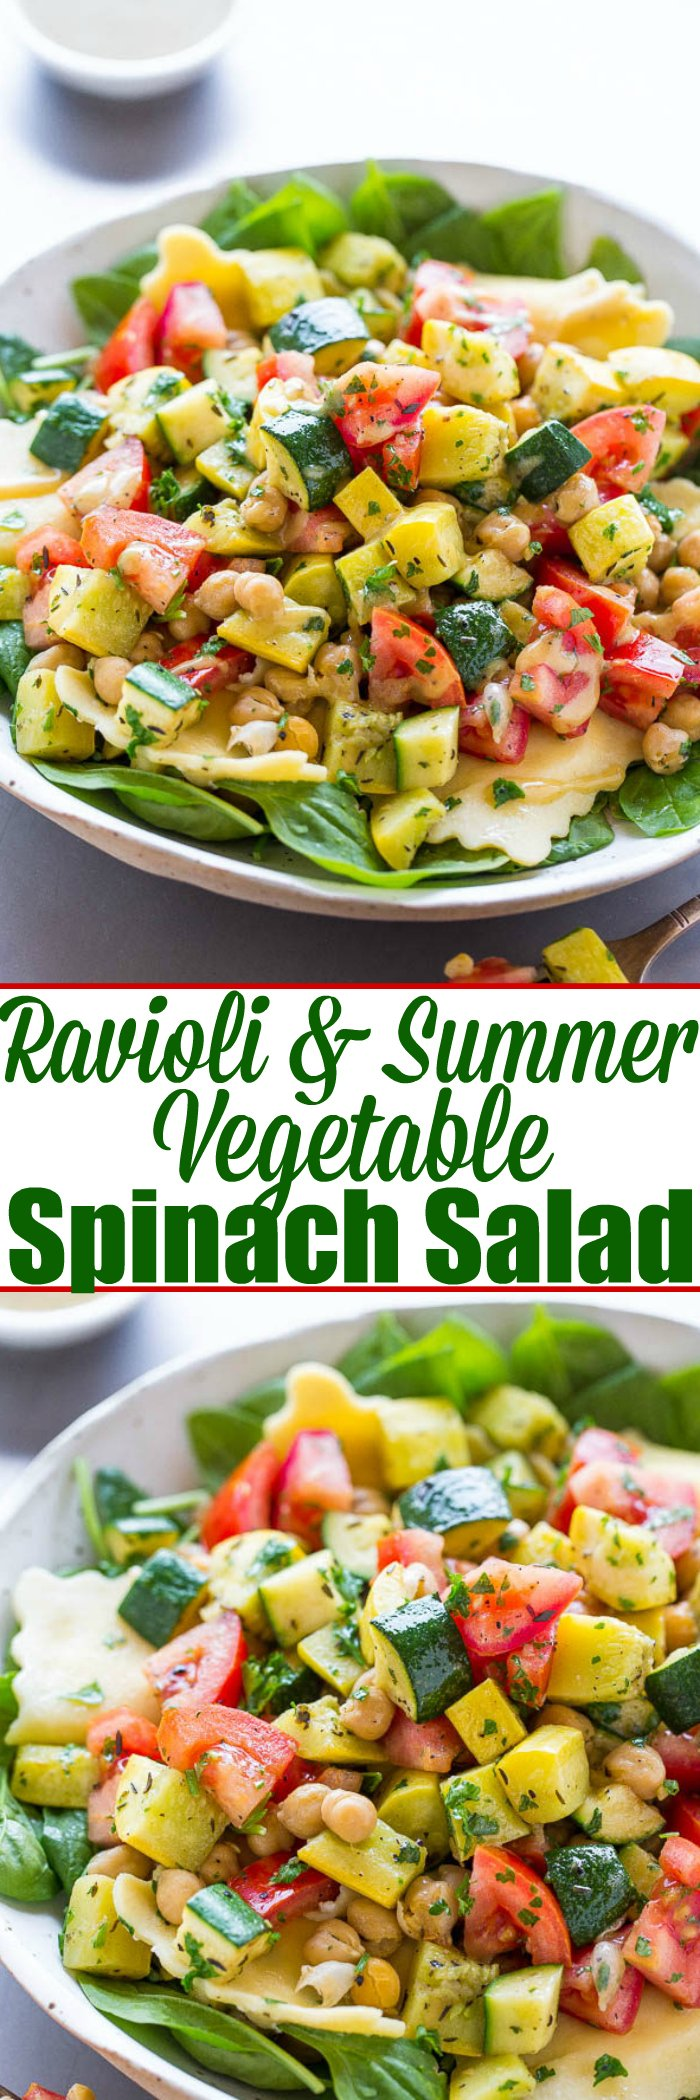 Summer Ravioli Salad — Crisp-tender zucchini, yellow squash, tomatoes, and chickpeas over spinach with cheesy ravioli and a dijon vinaigrette!! A HEALTHY summer pasta salad that takes advantage of fresh produce!!